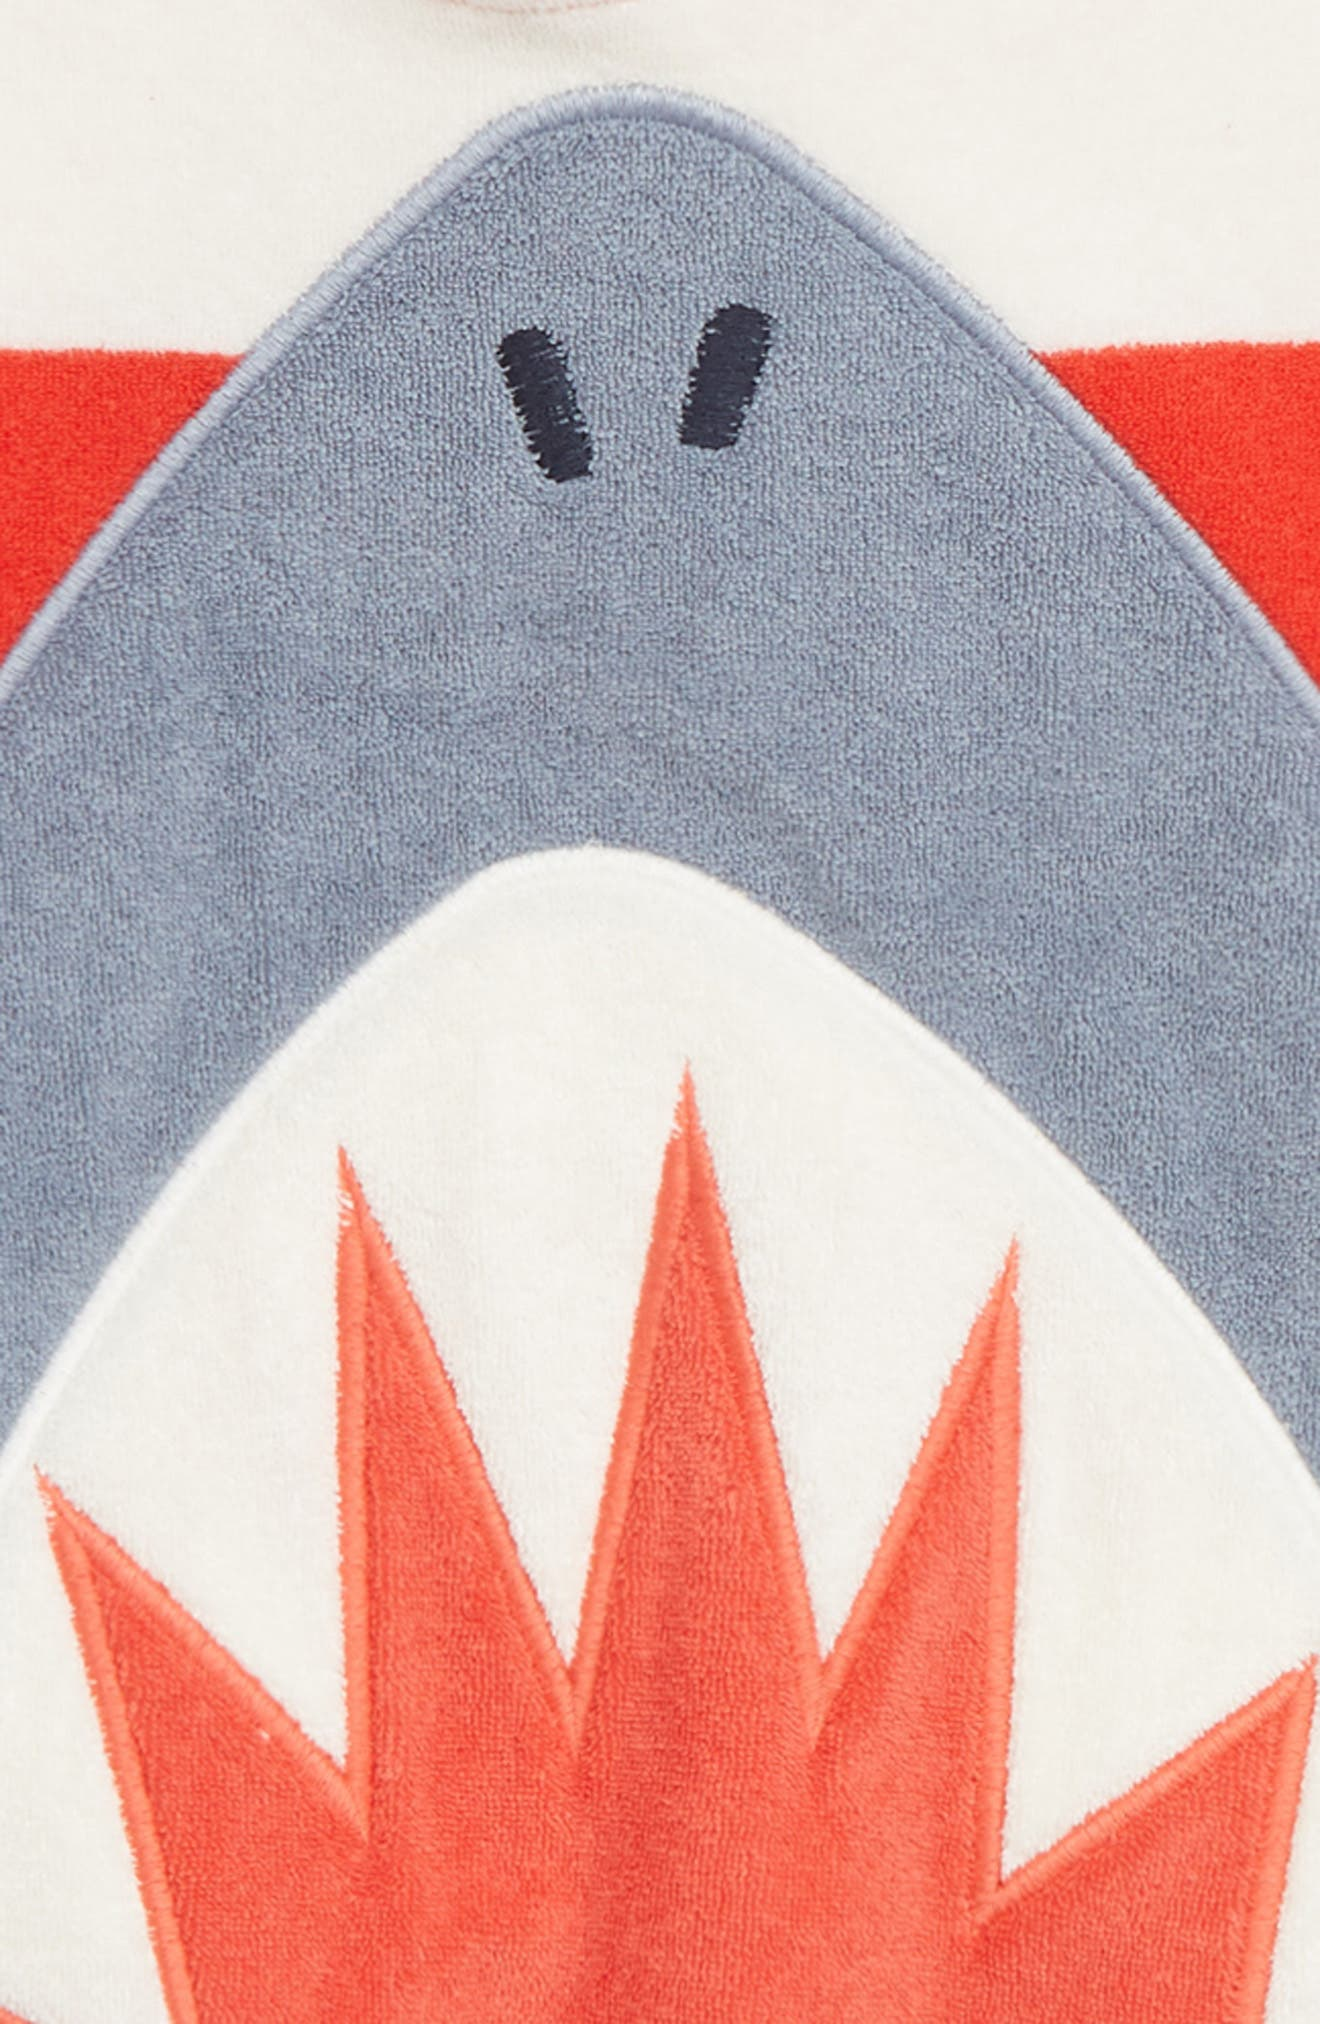 MINI BODEN, Towelling Hooded Cover-Up, Alternate thumbnail 2, color, BEAM RED/ IVORY SHARK